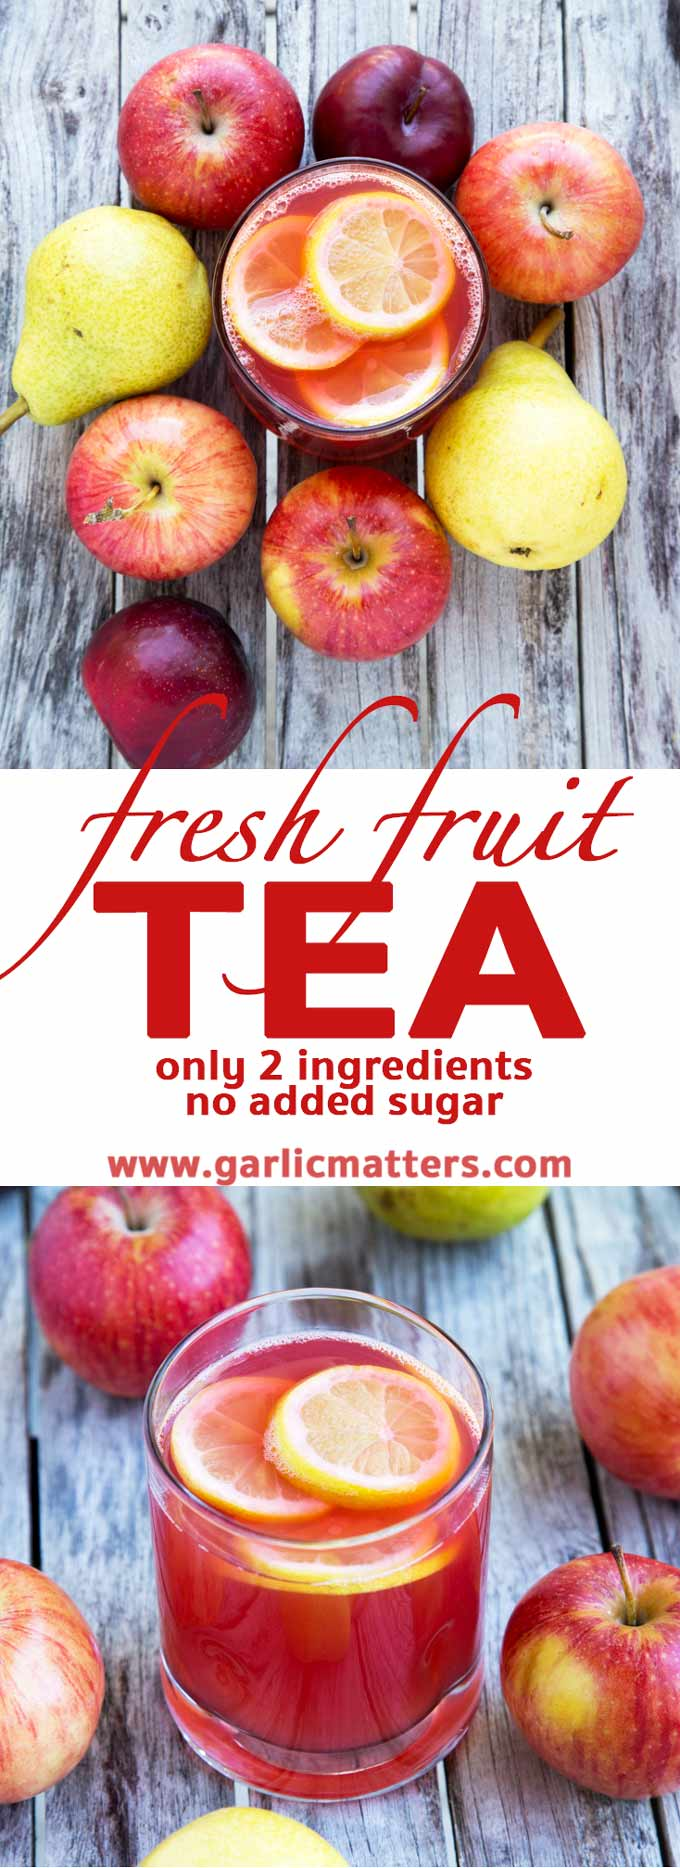 Naturally sweet Fresh Fruit Tea is a super healthy, nonalcoholic, refreshing, kid friendly beverage made with fresh fruit and water only.